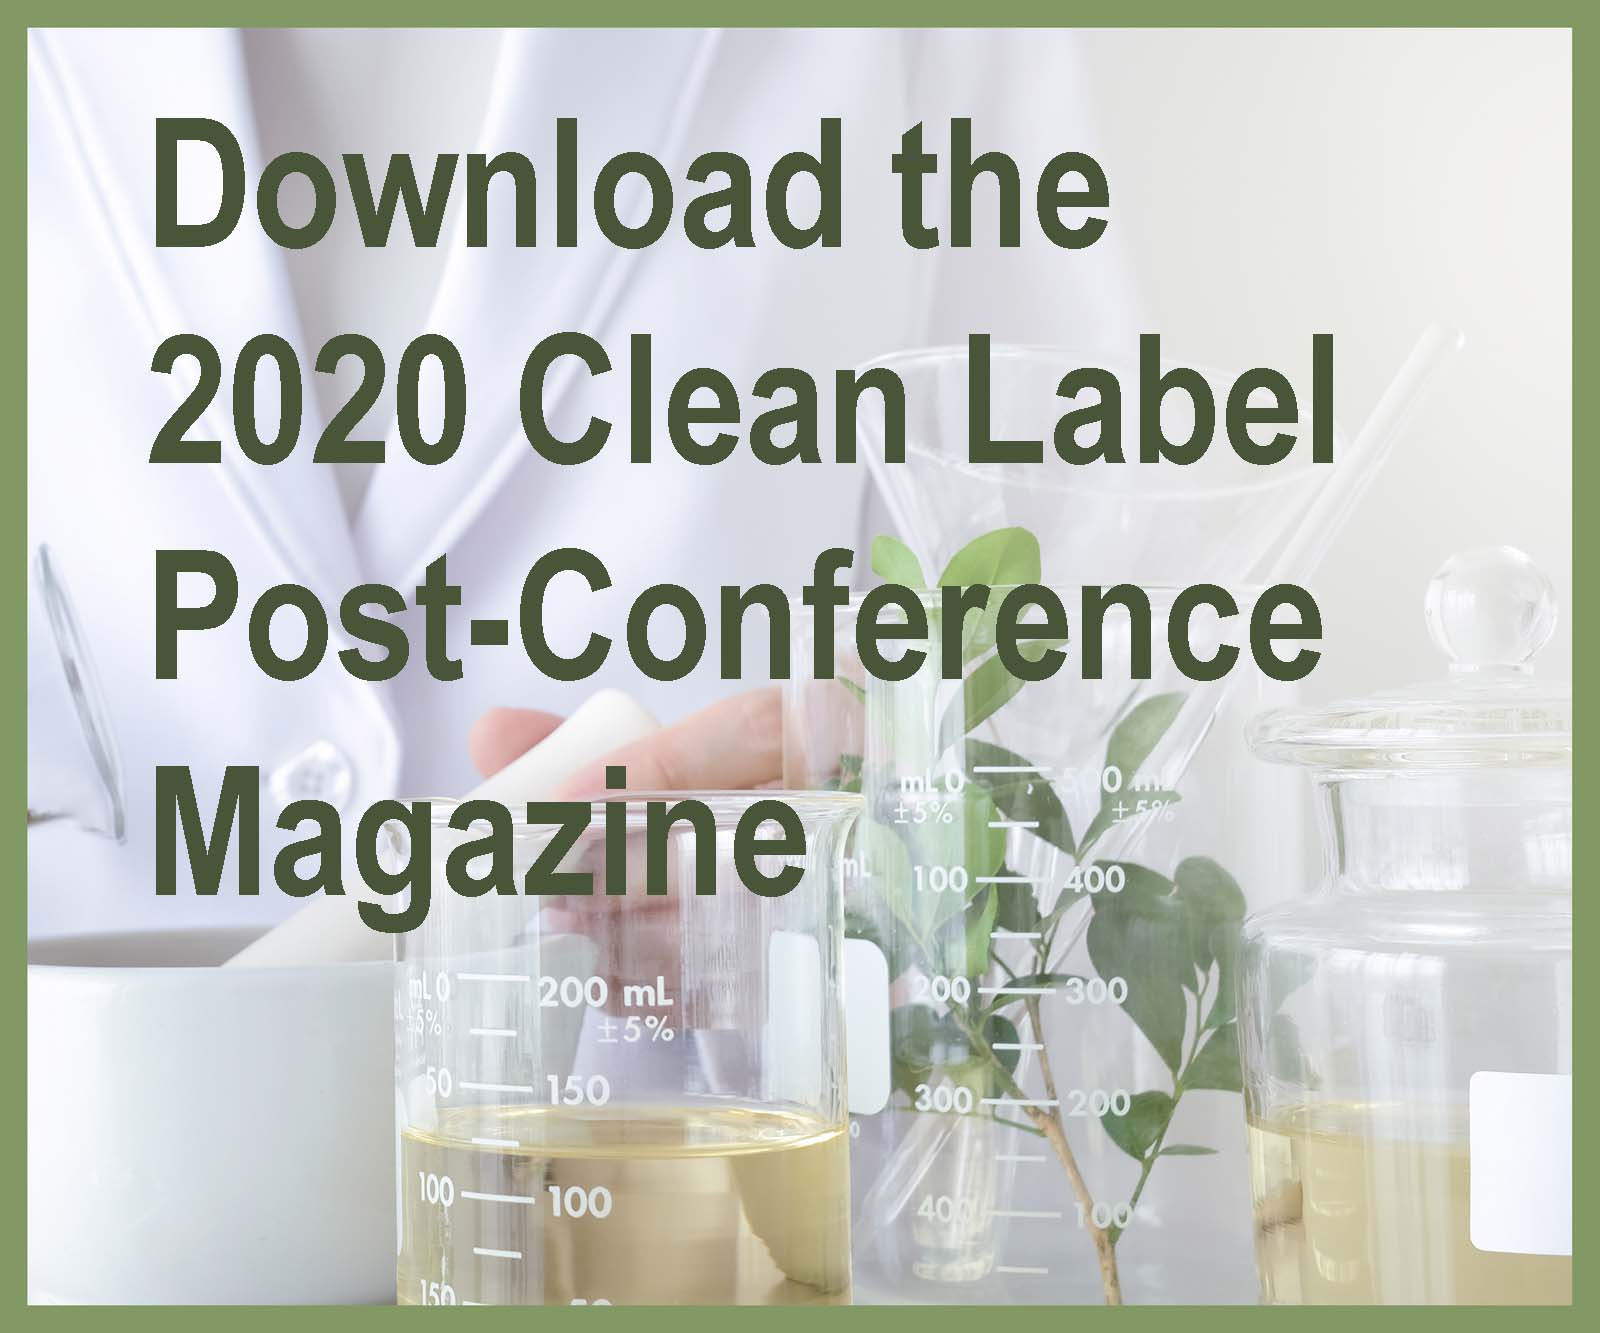 2020 Clean Label Post-Conference Magazine Banner Ad